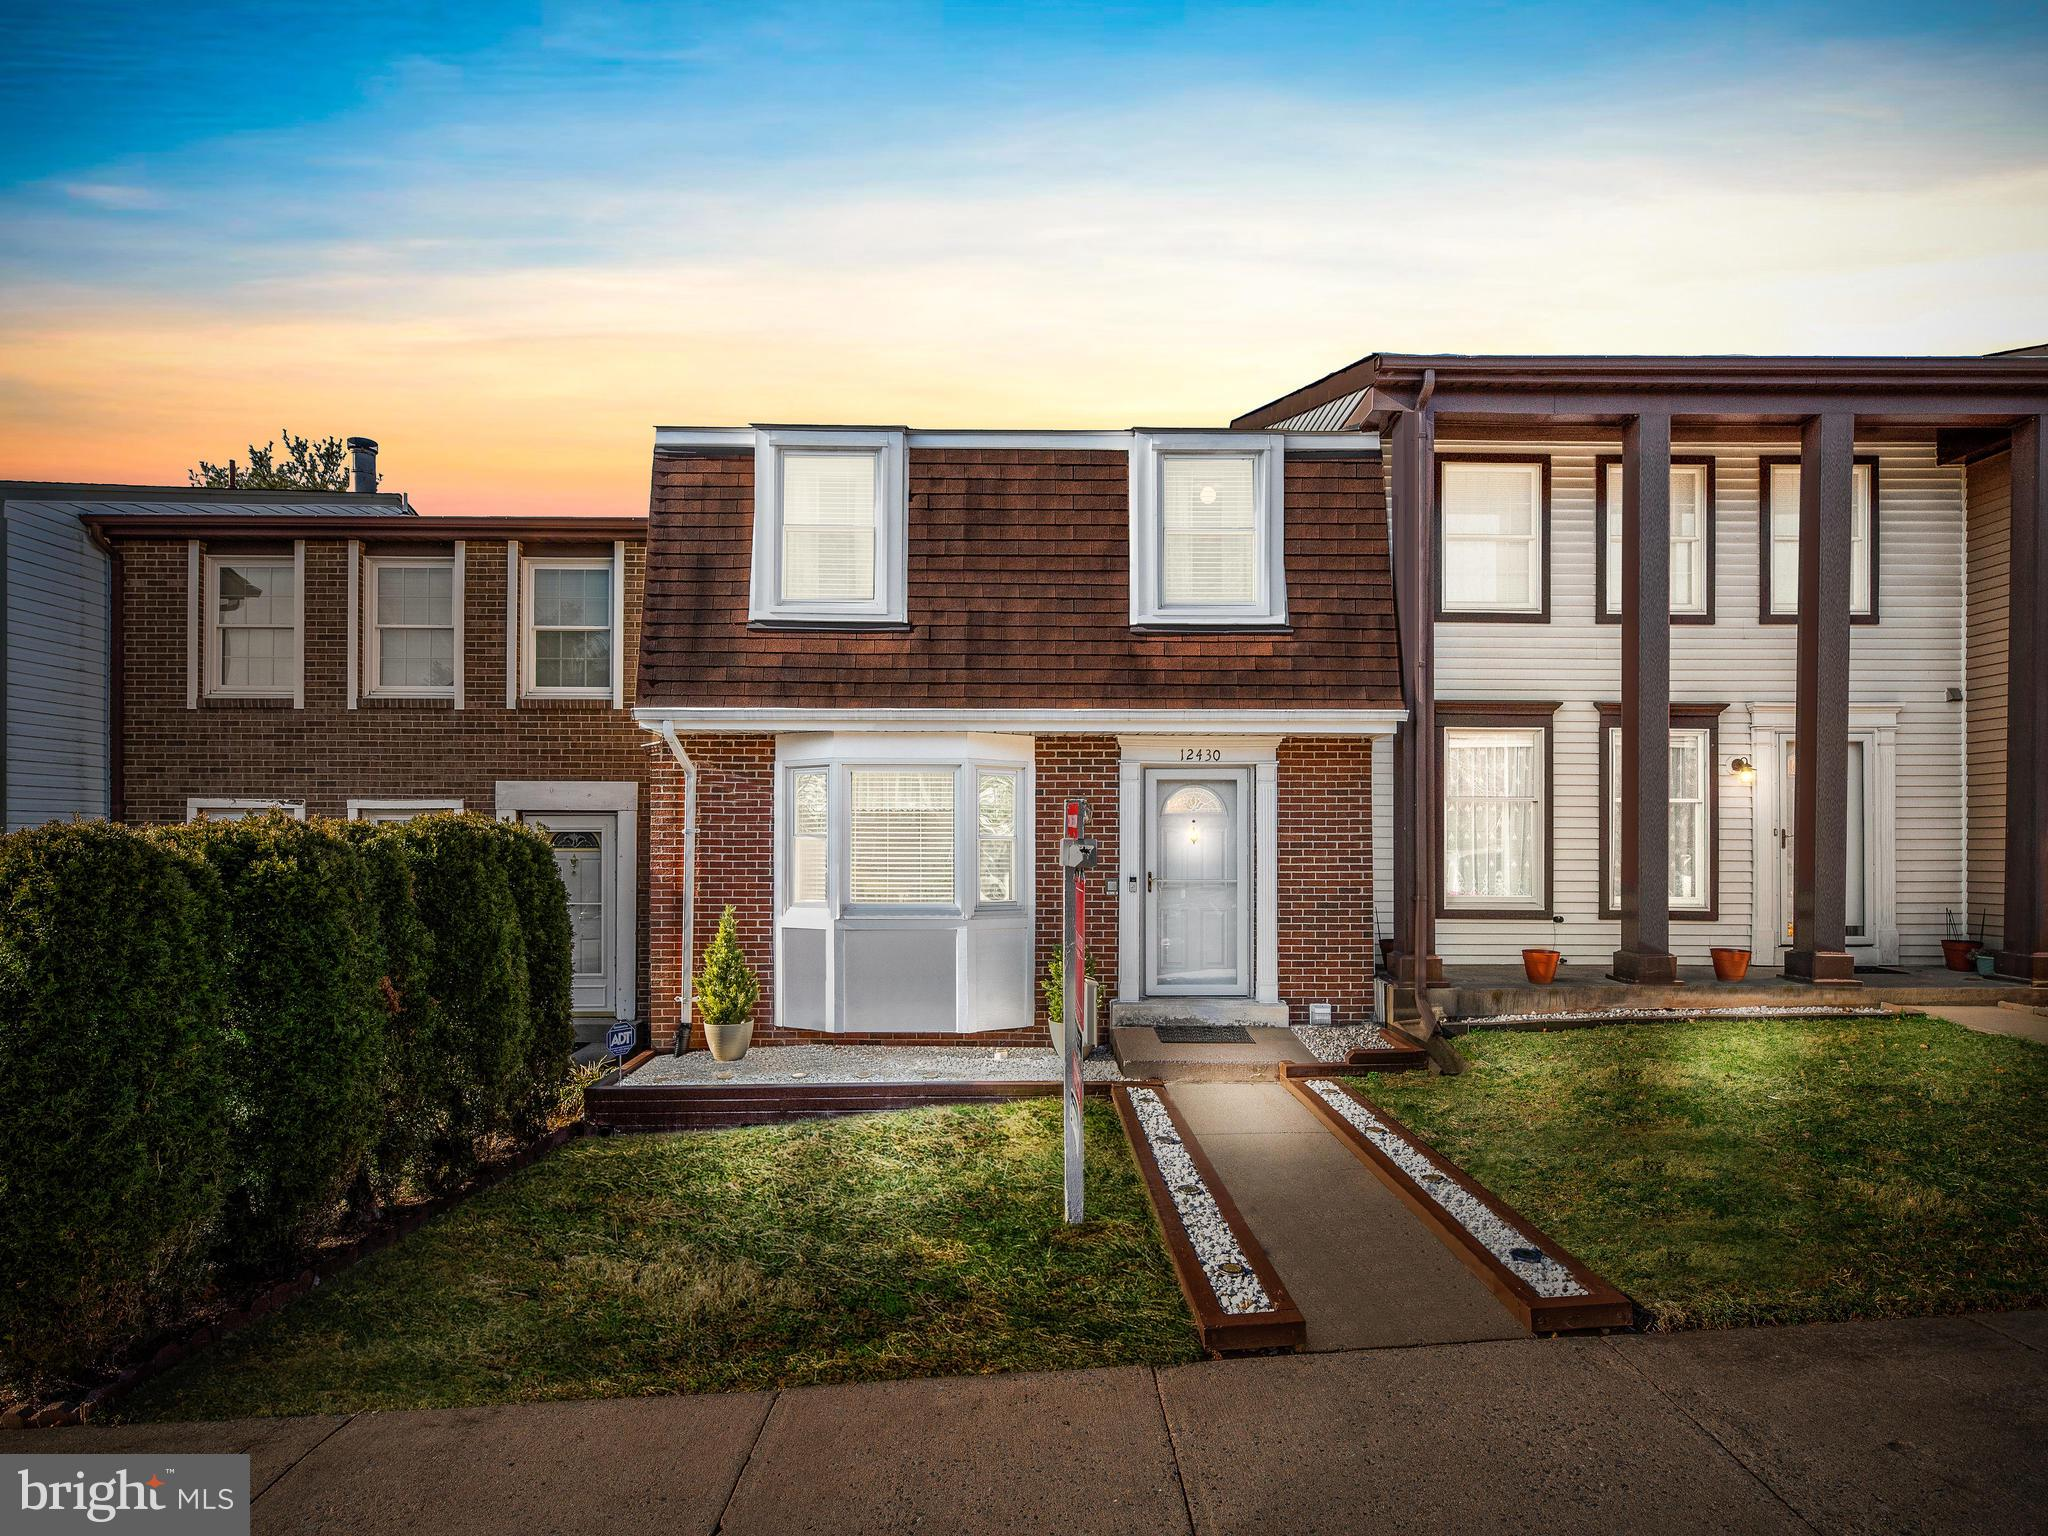 Rare Gem in Pristine Condition! Stunning brick front townhome offering 3 bedrooms, 2 full and 2 half